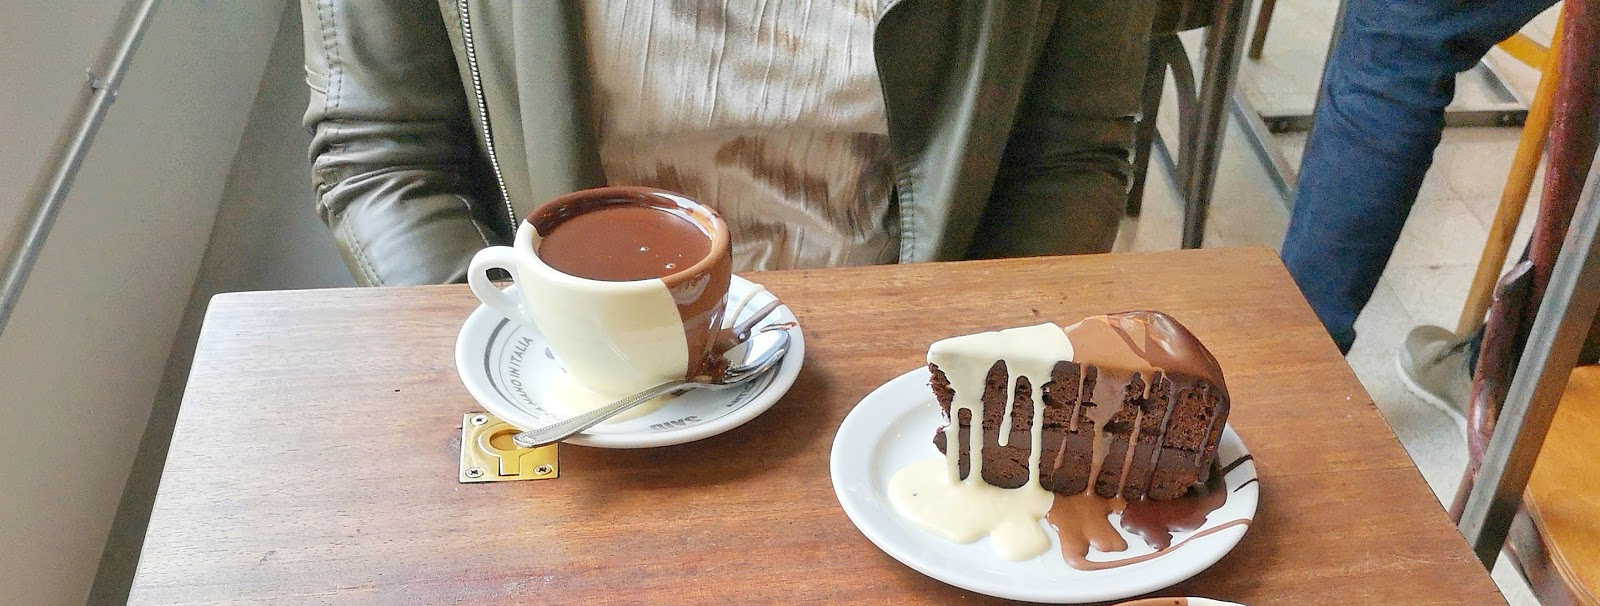 Best hot chocolate in London review - Said Dal 1923